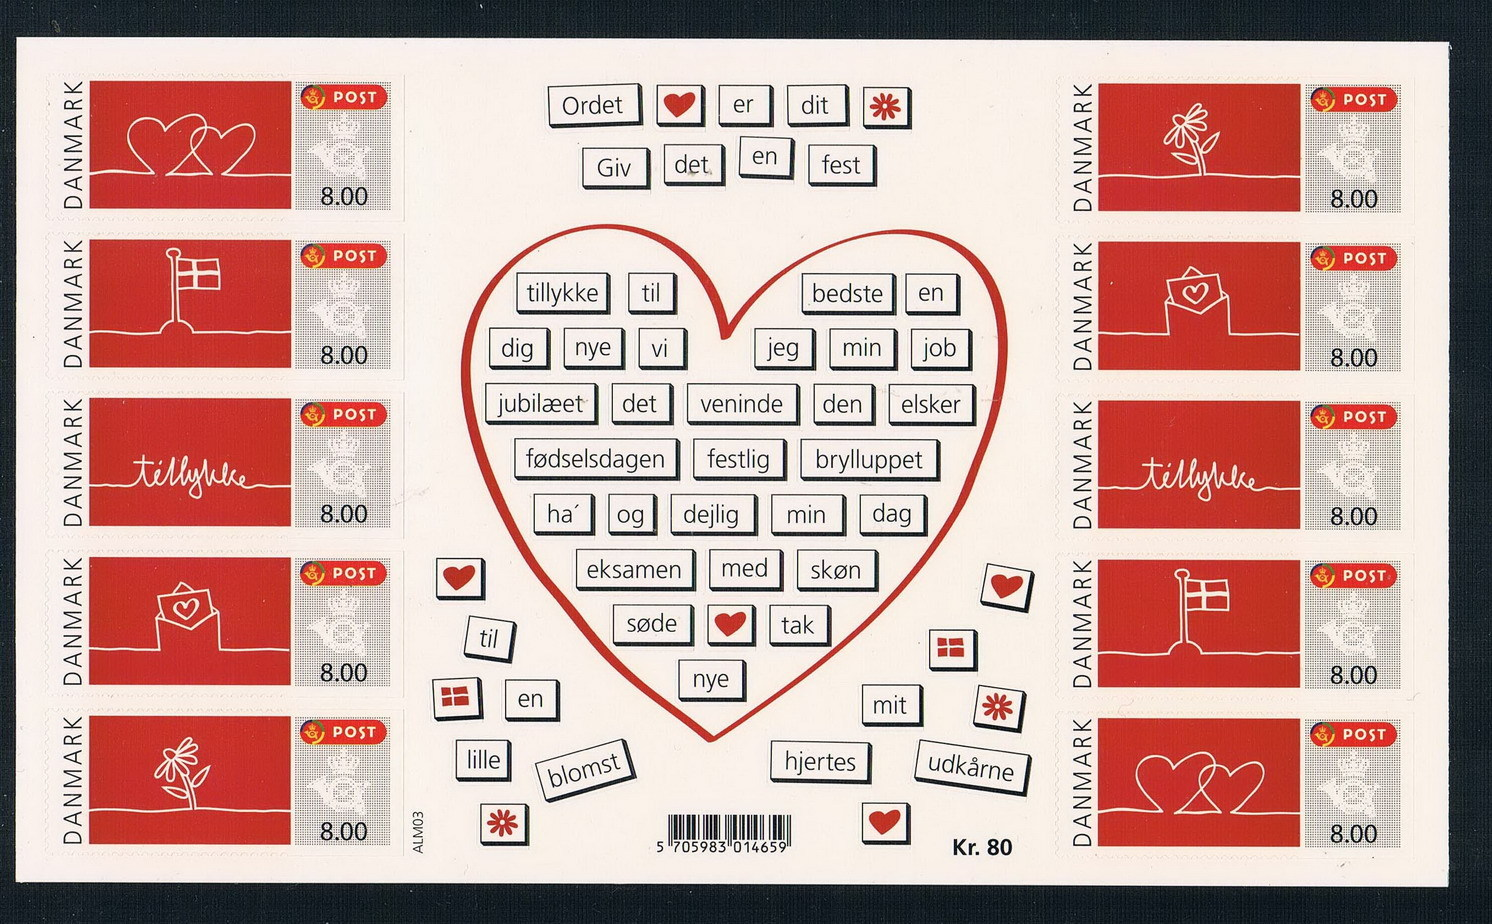 M0856 Denmark 2011 Valentines Day greetings stamps stamps 1MS new edition stickers small flag 1205<br>